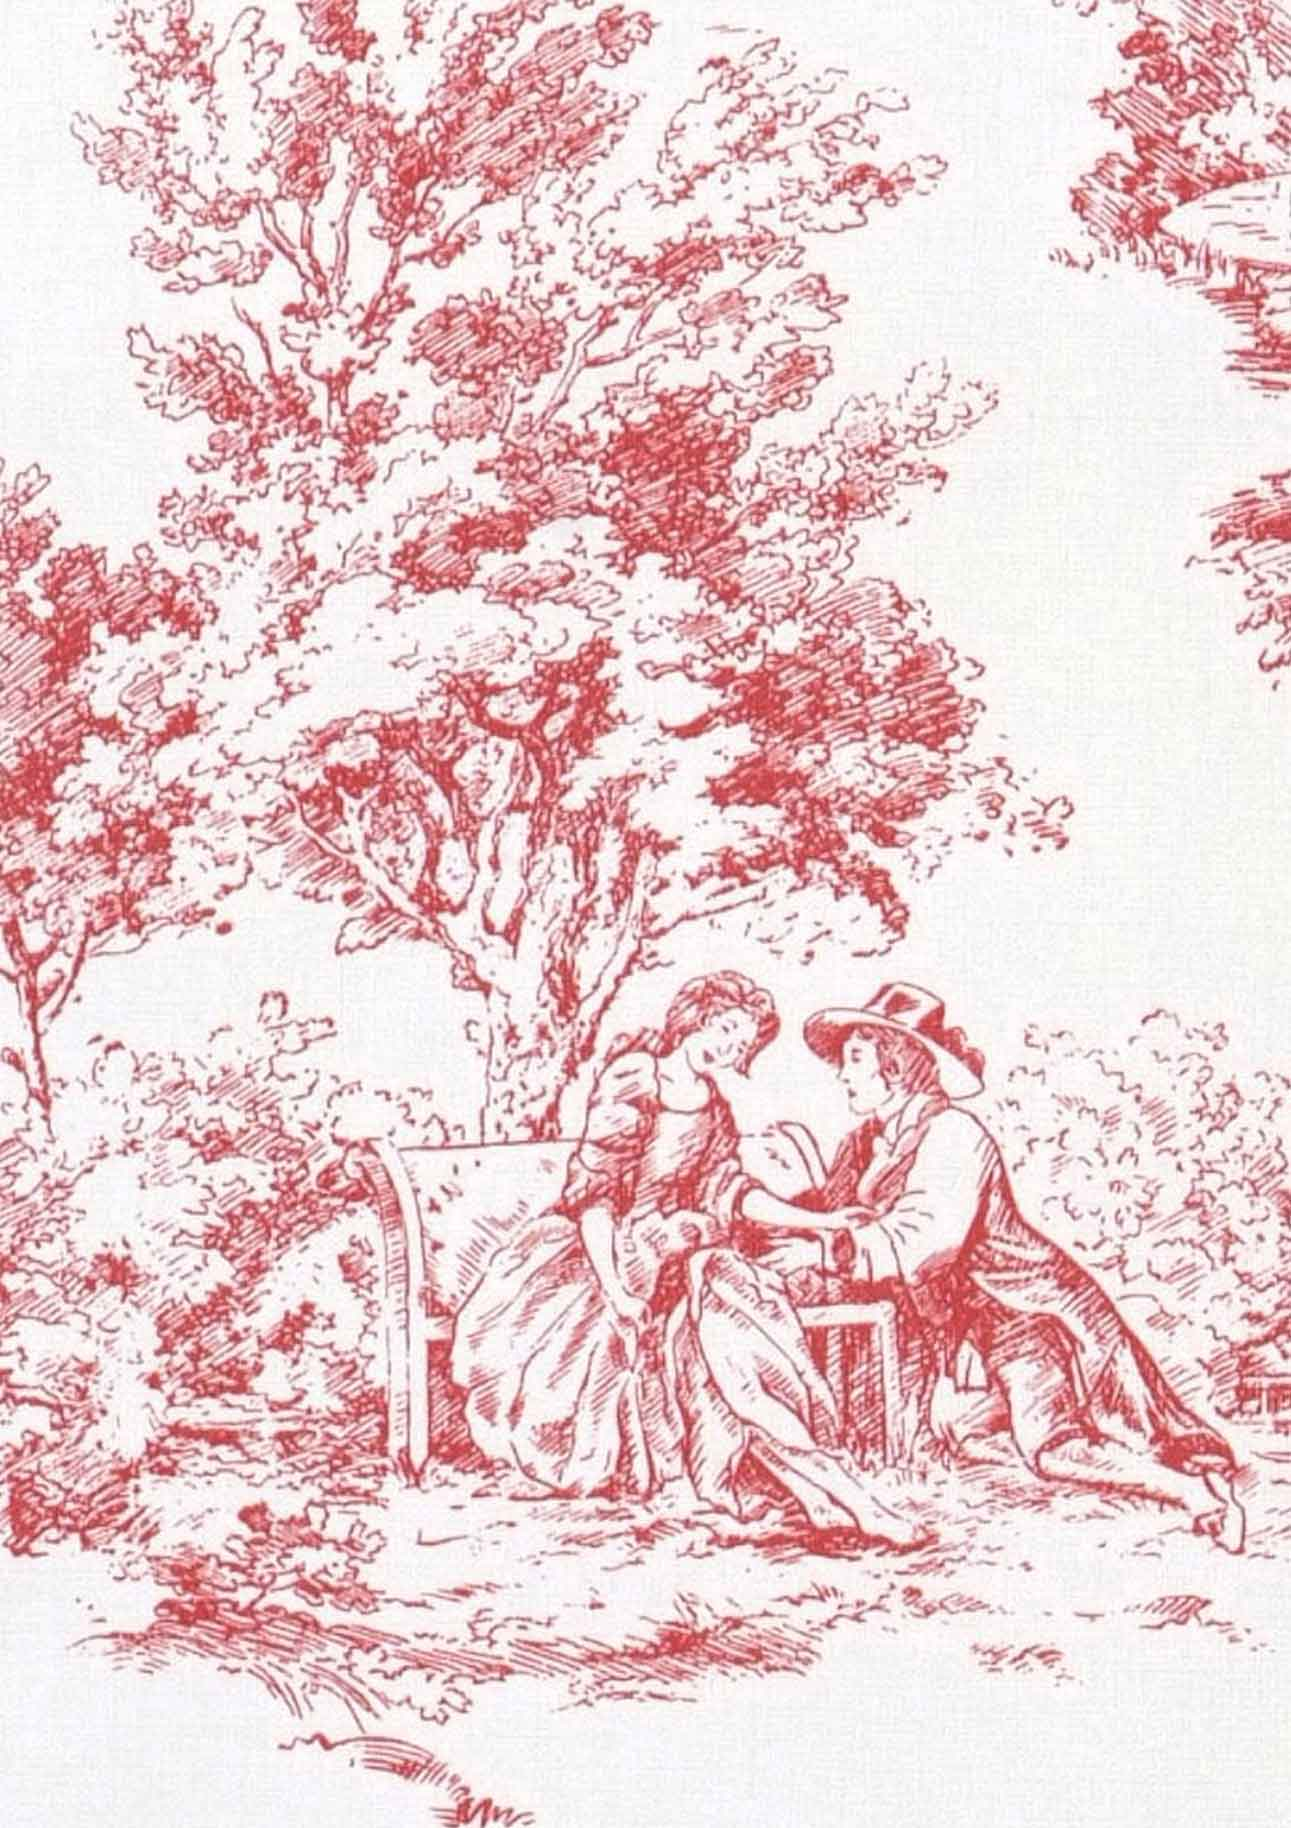 Wallpaper toile de jouy white red wallpaper from the 70s - Vichy et toile de jouy ...